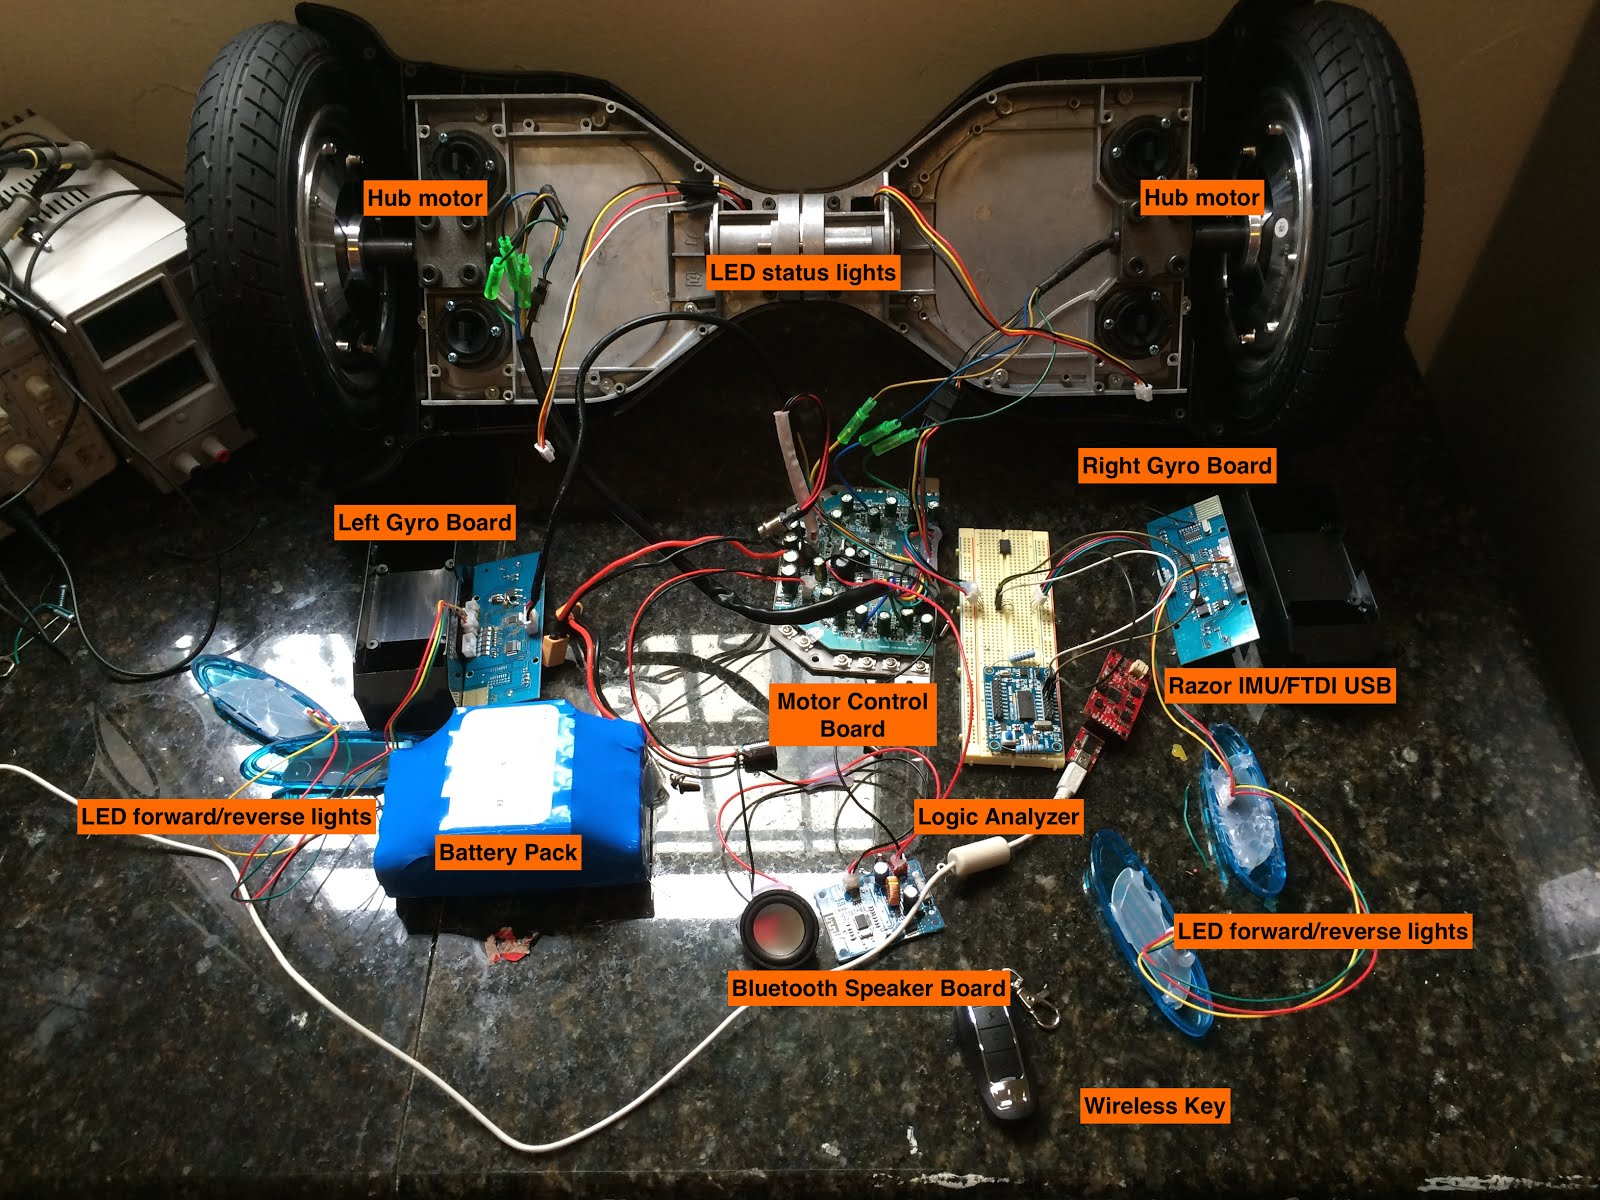 How I Hacked The Self Balancing Scooter Drews Blog Bridge Motor Control With Power Mosfets What Im Interested In Is Electronics There Look Like And They Communicate Each Other So Can Learn To Motors My